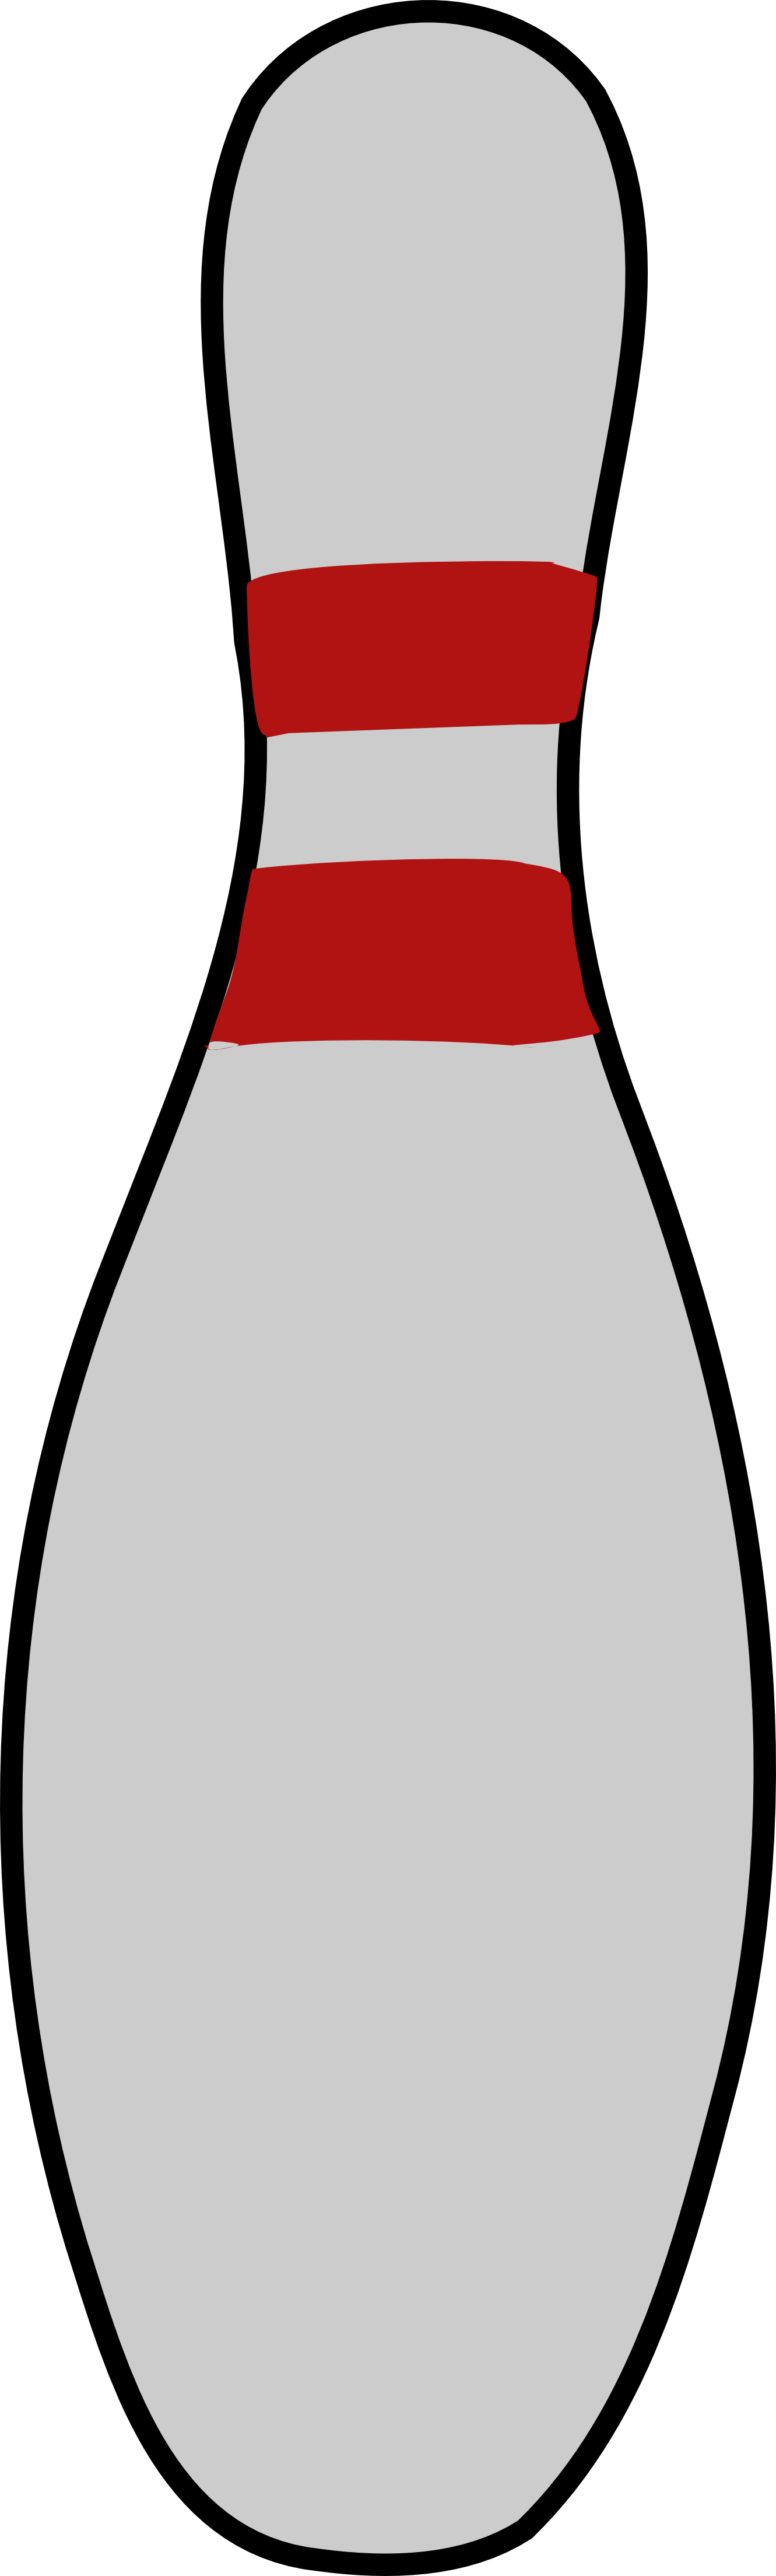 Bowling Pin 3 Coloring Book Colouring Letters Colouringbook Org